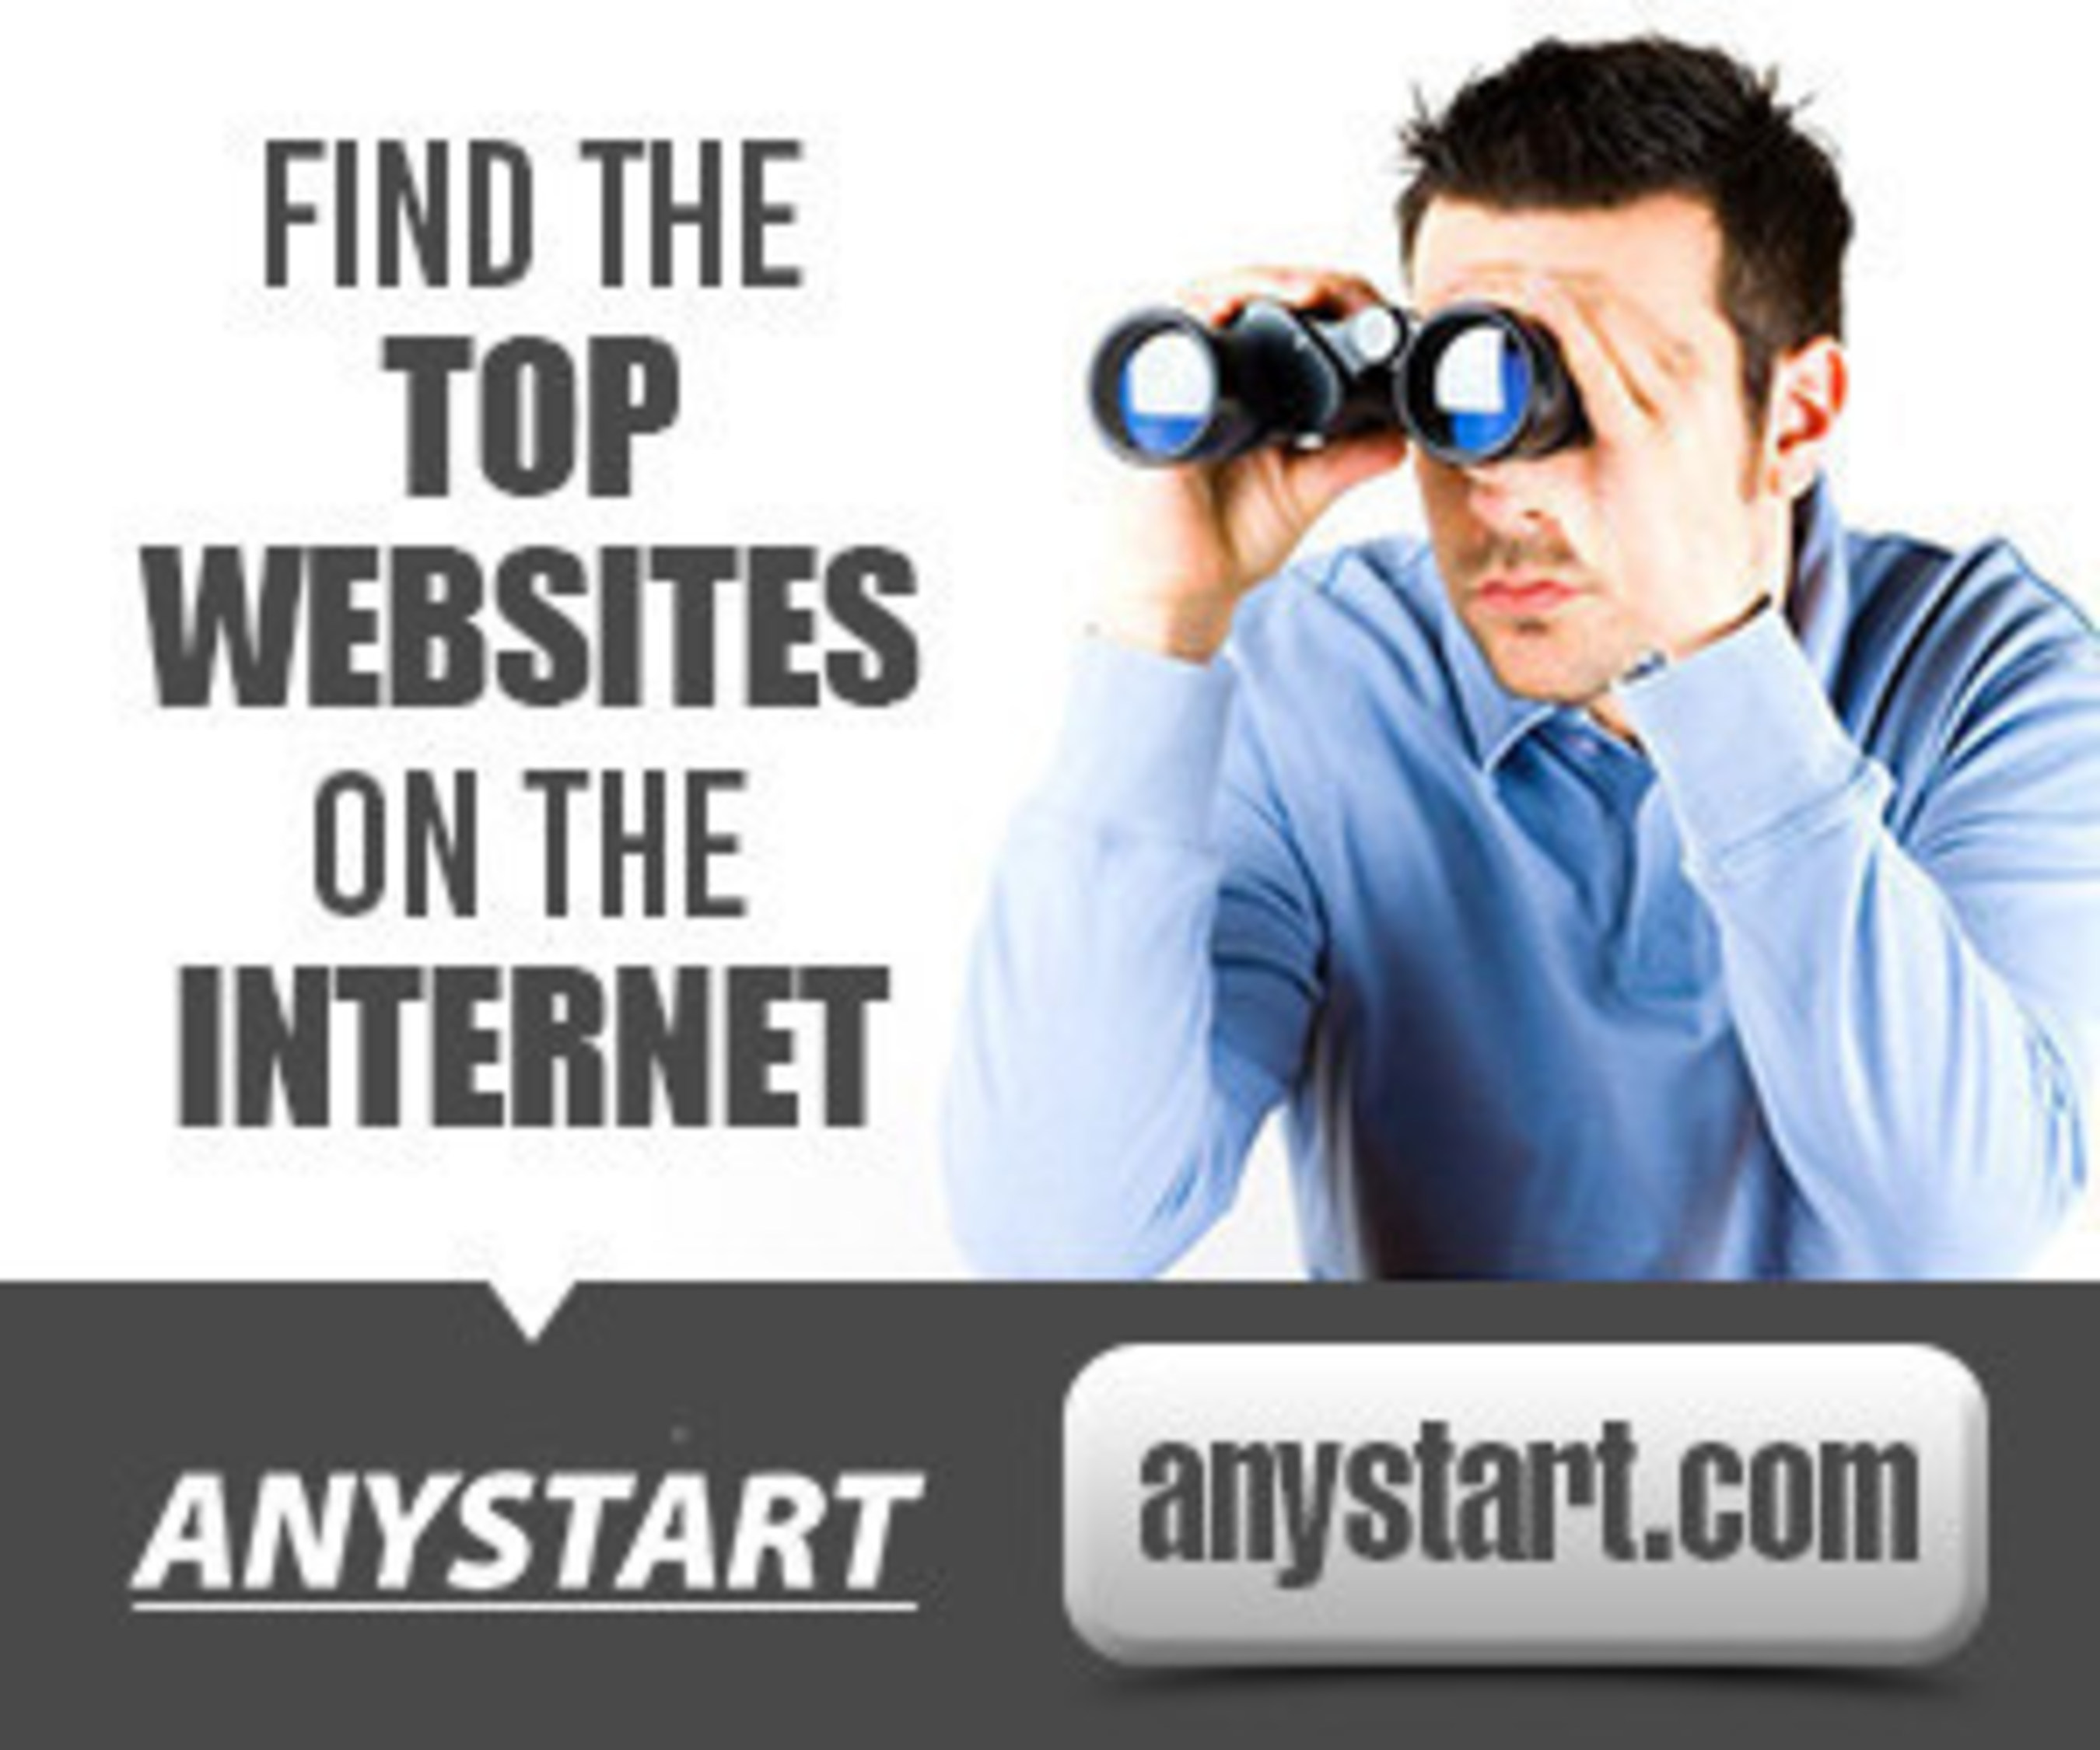 Find The Top Websites On The Internet